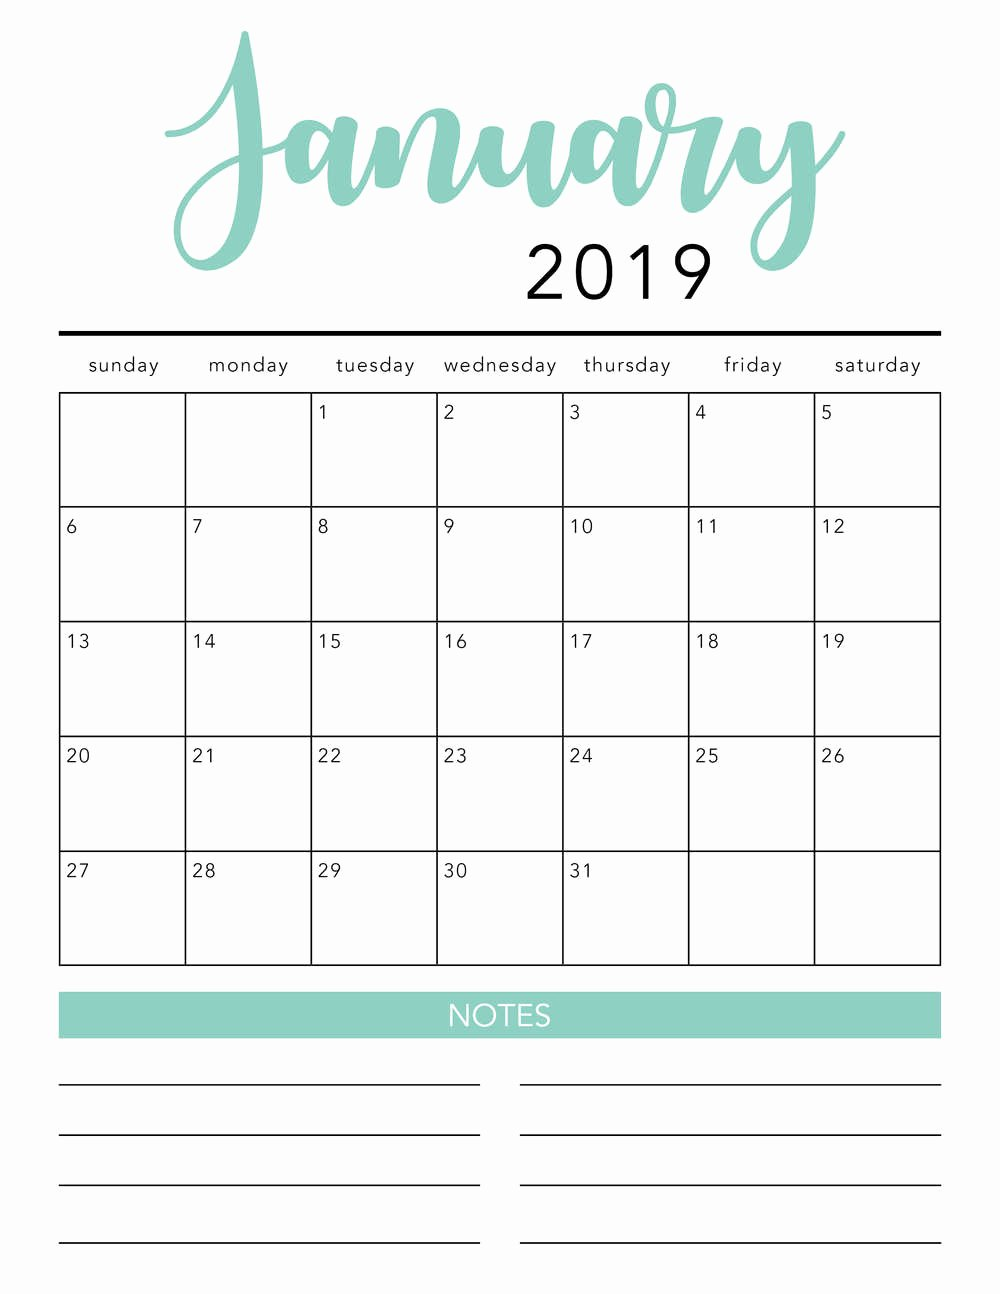 Free 2019 Calendar Template Unique Free 2019 Printable Calendar Template 2 Colors I